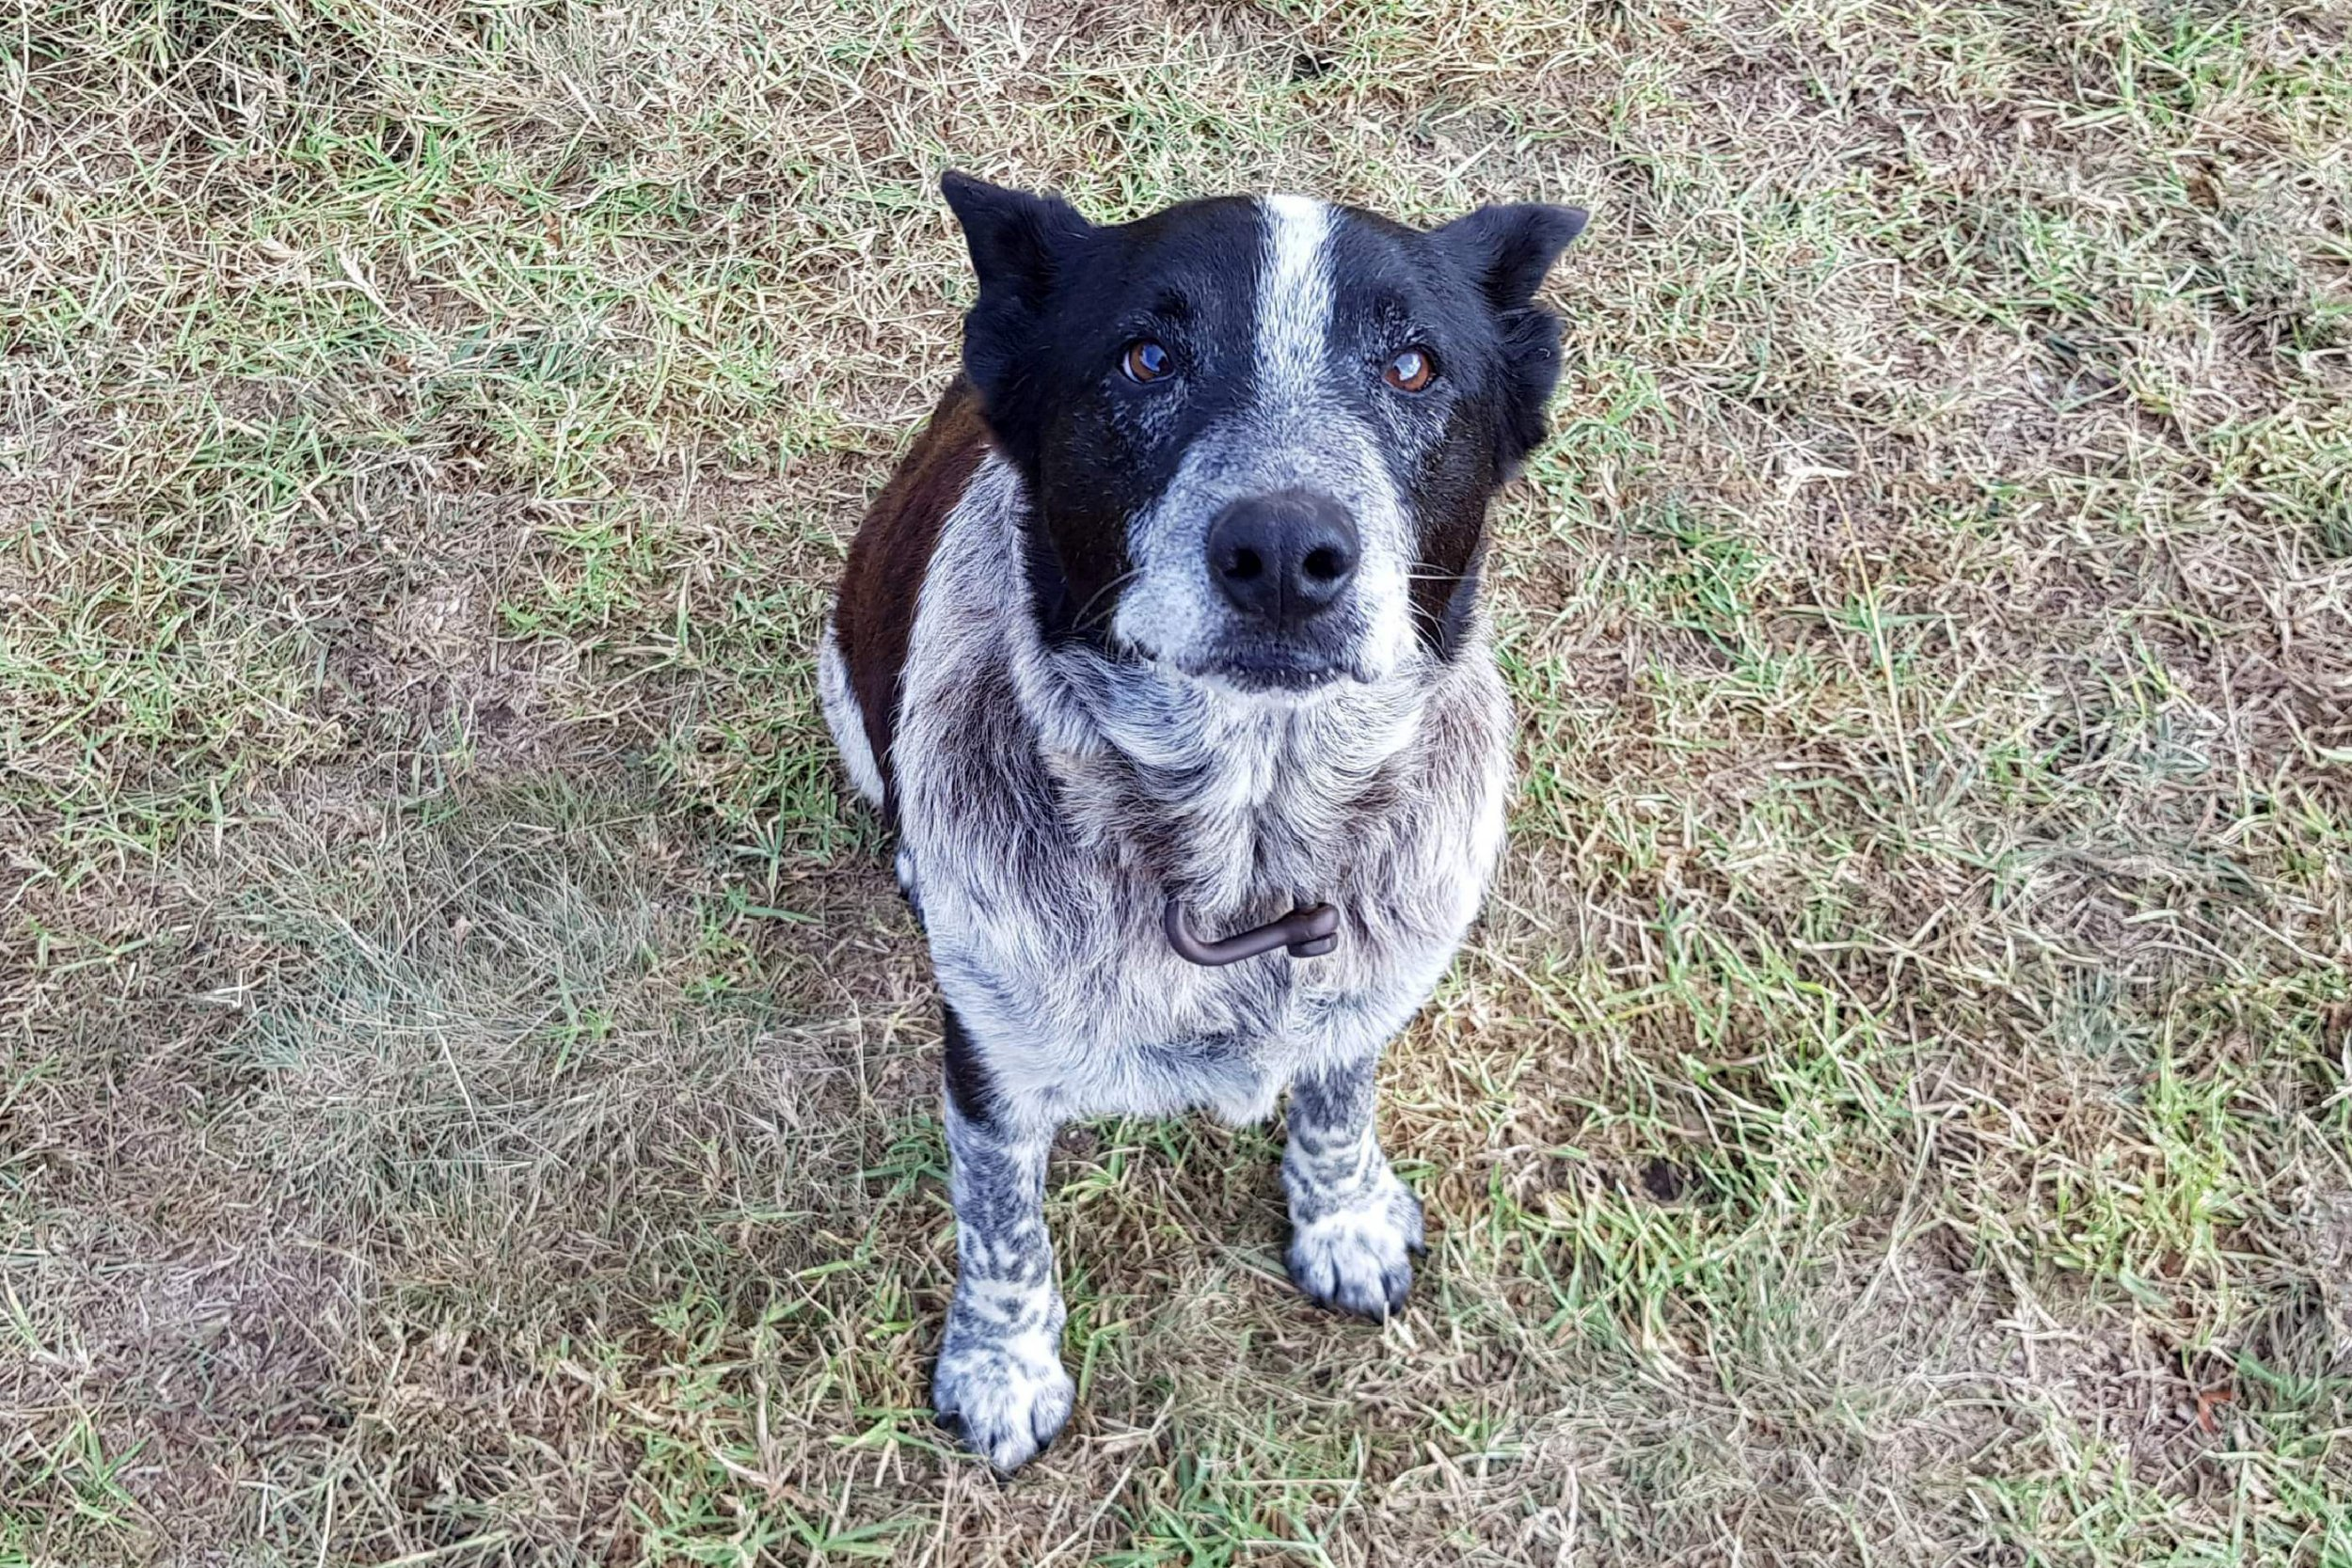 """This handout from Kelly Benston taken and received on April 21, 2018 shows Max, a seventeen-year-old blue heeler, in Warwick after he spent the night with a lost three-year-old in Australian bushland. Max, a deaf and partially blind dog that kept a lost three-year-old safe in Australian bushland overnight, was awarded police honours on April 21 after leading rescuers to the child. / AFP PHOTO / KELLY BENSTON / Kelly BENSTON / RESTRICTED TO EDITORIAL USE - MANDATORY CREDIT """"AFP PHOTO/KELLY BENSTON"""" - NO MARKETING NO ADVERTISING CAMPAIGNS - DISTRIBUTED AS A SERVICE TO CLIENTS - NO ARCHIVE KELLY BENSTON/AFP/Getty Images"""